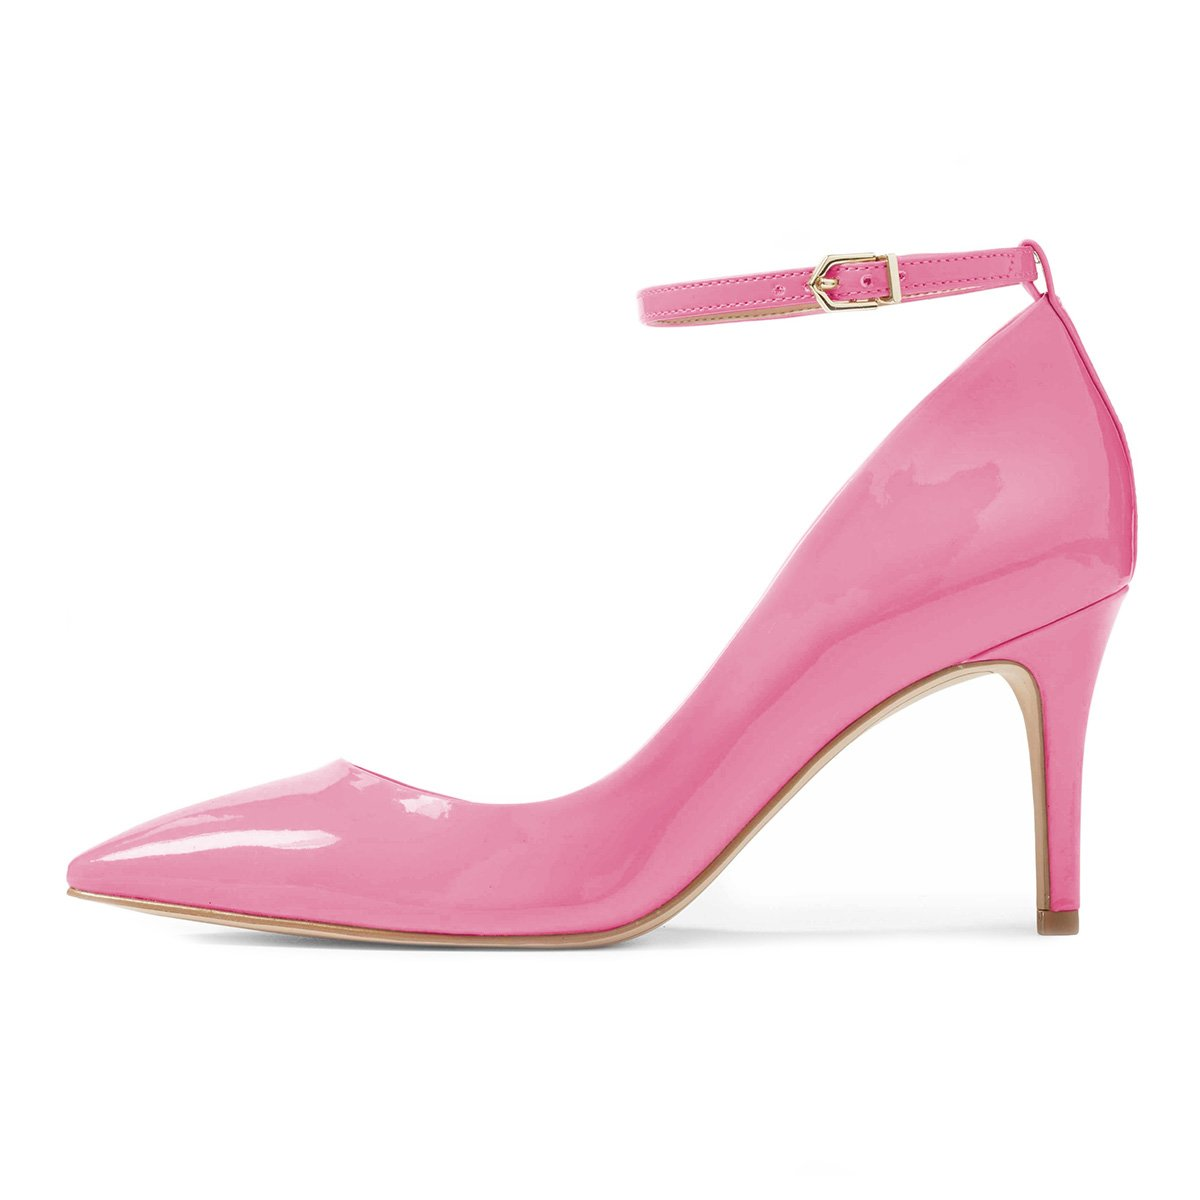 XYD Women Pointed Toe D'Orsay Mid Heel Pumps Ankle Strap Buckled Wedding Party Dress Shoes B078XPGN26 15 B(M) US Hot Pink